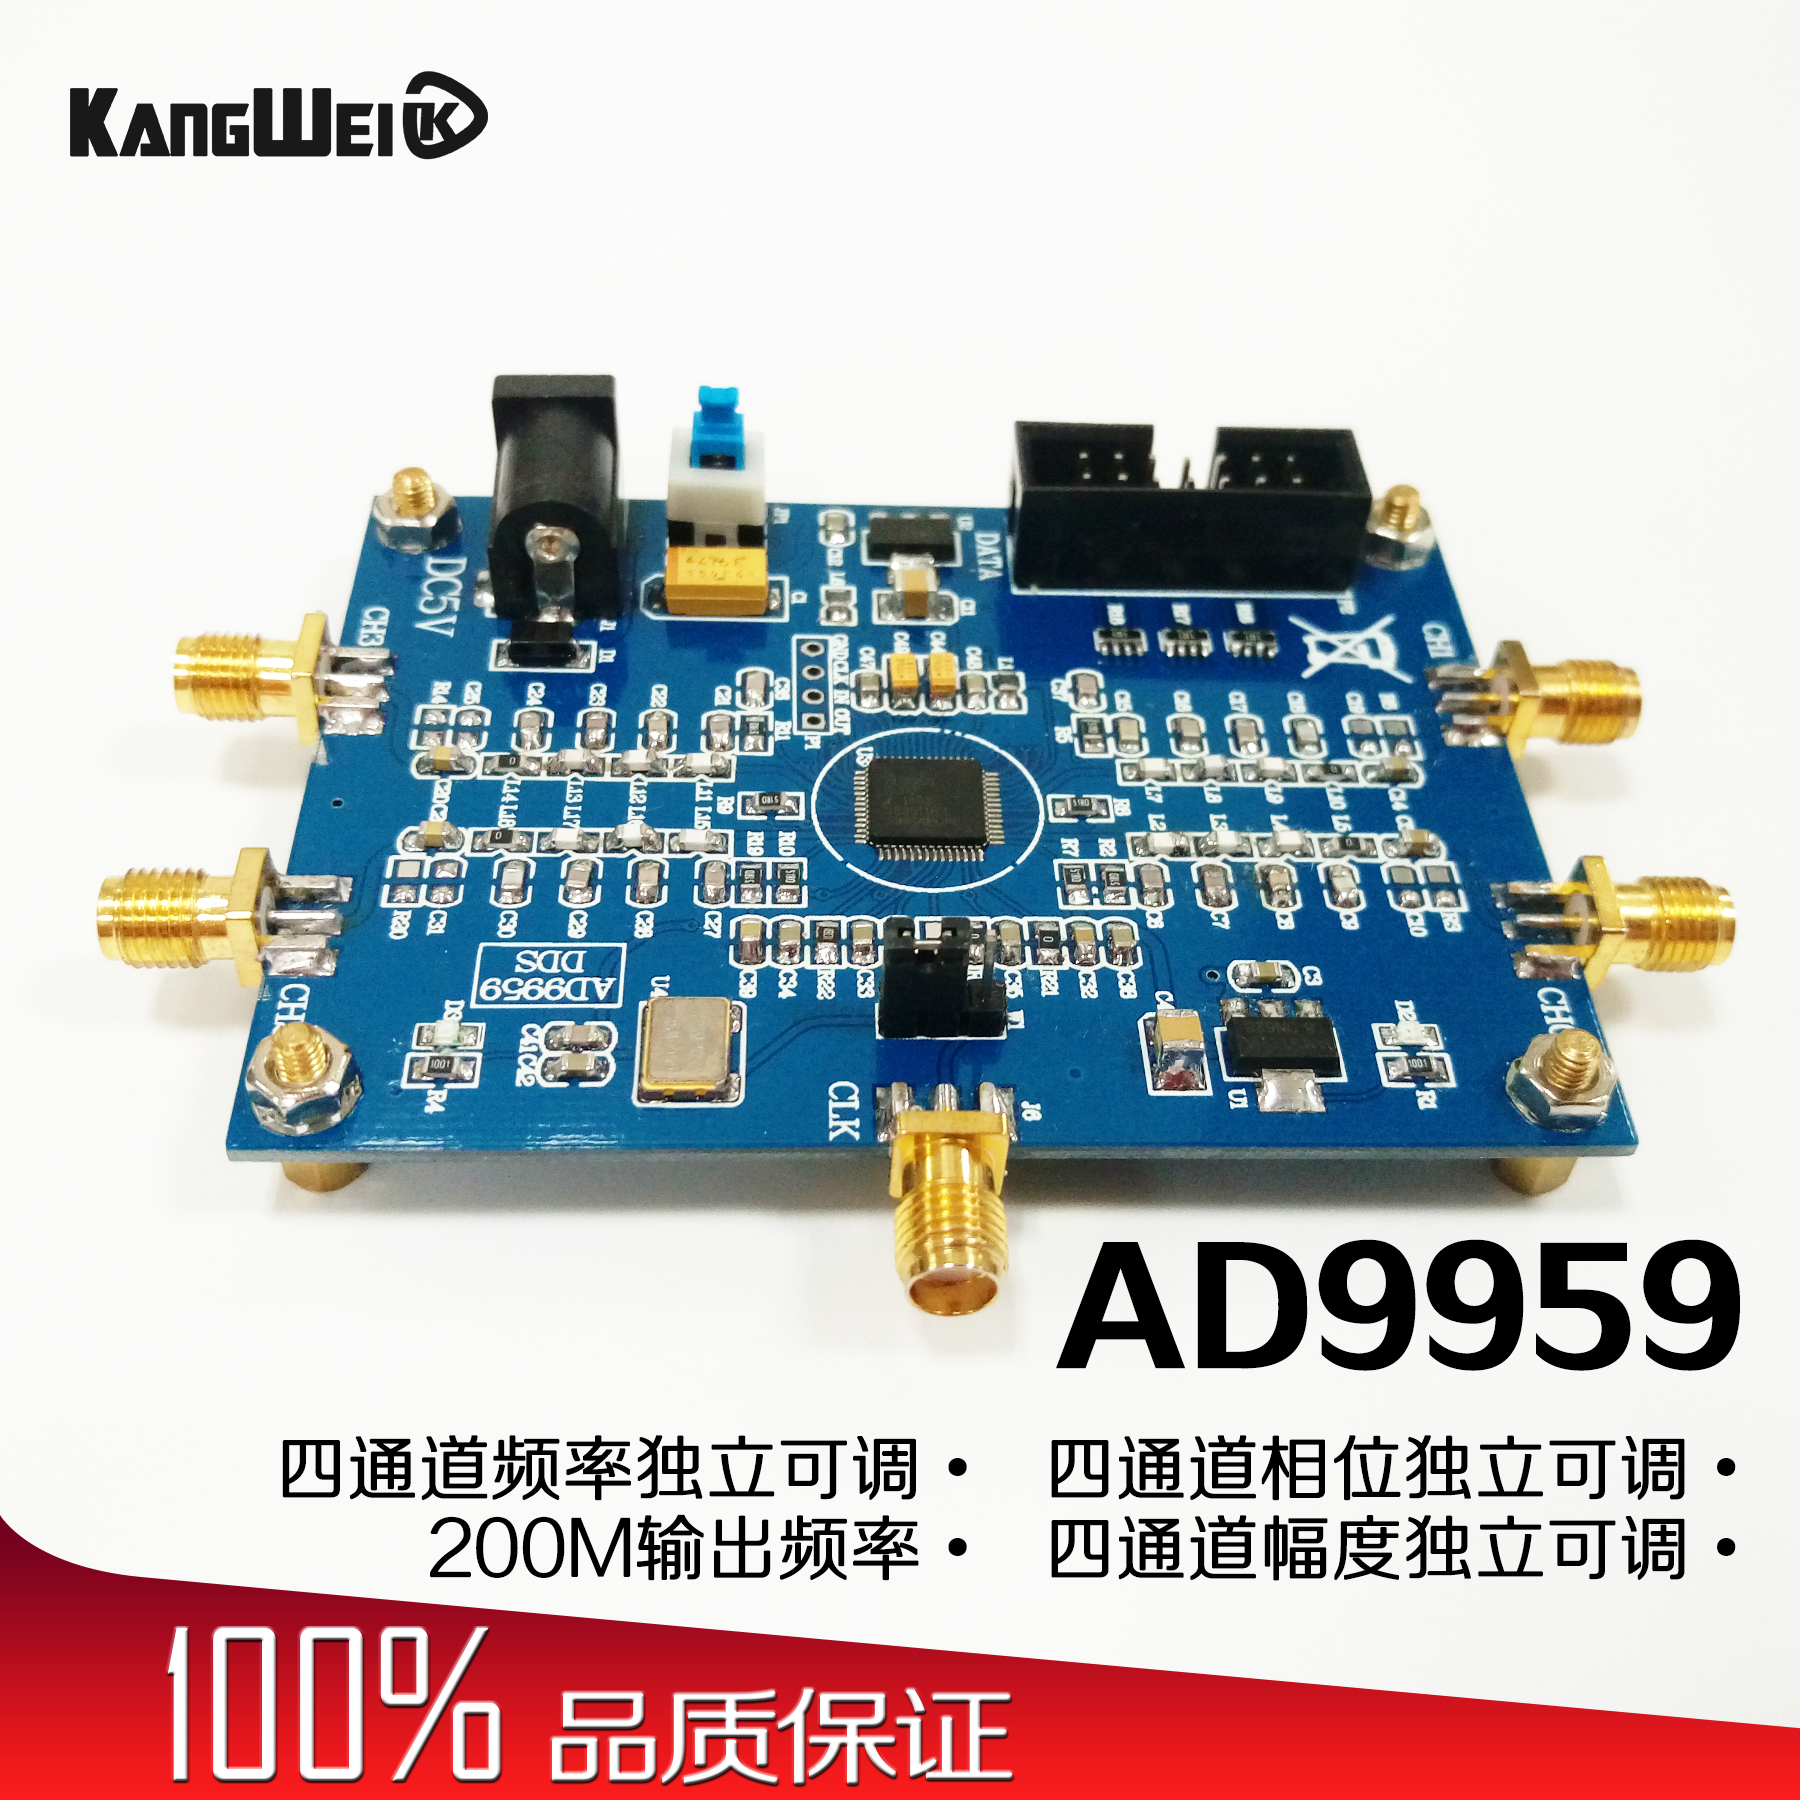 RF Signal Source, AD9959 Signal Generator, Four Channel DDS Module, Performance Is Much Better Than AD9854 udb1002s series dds signal source module